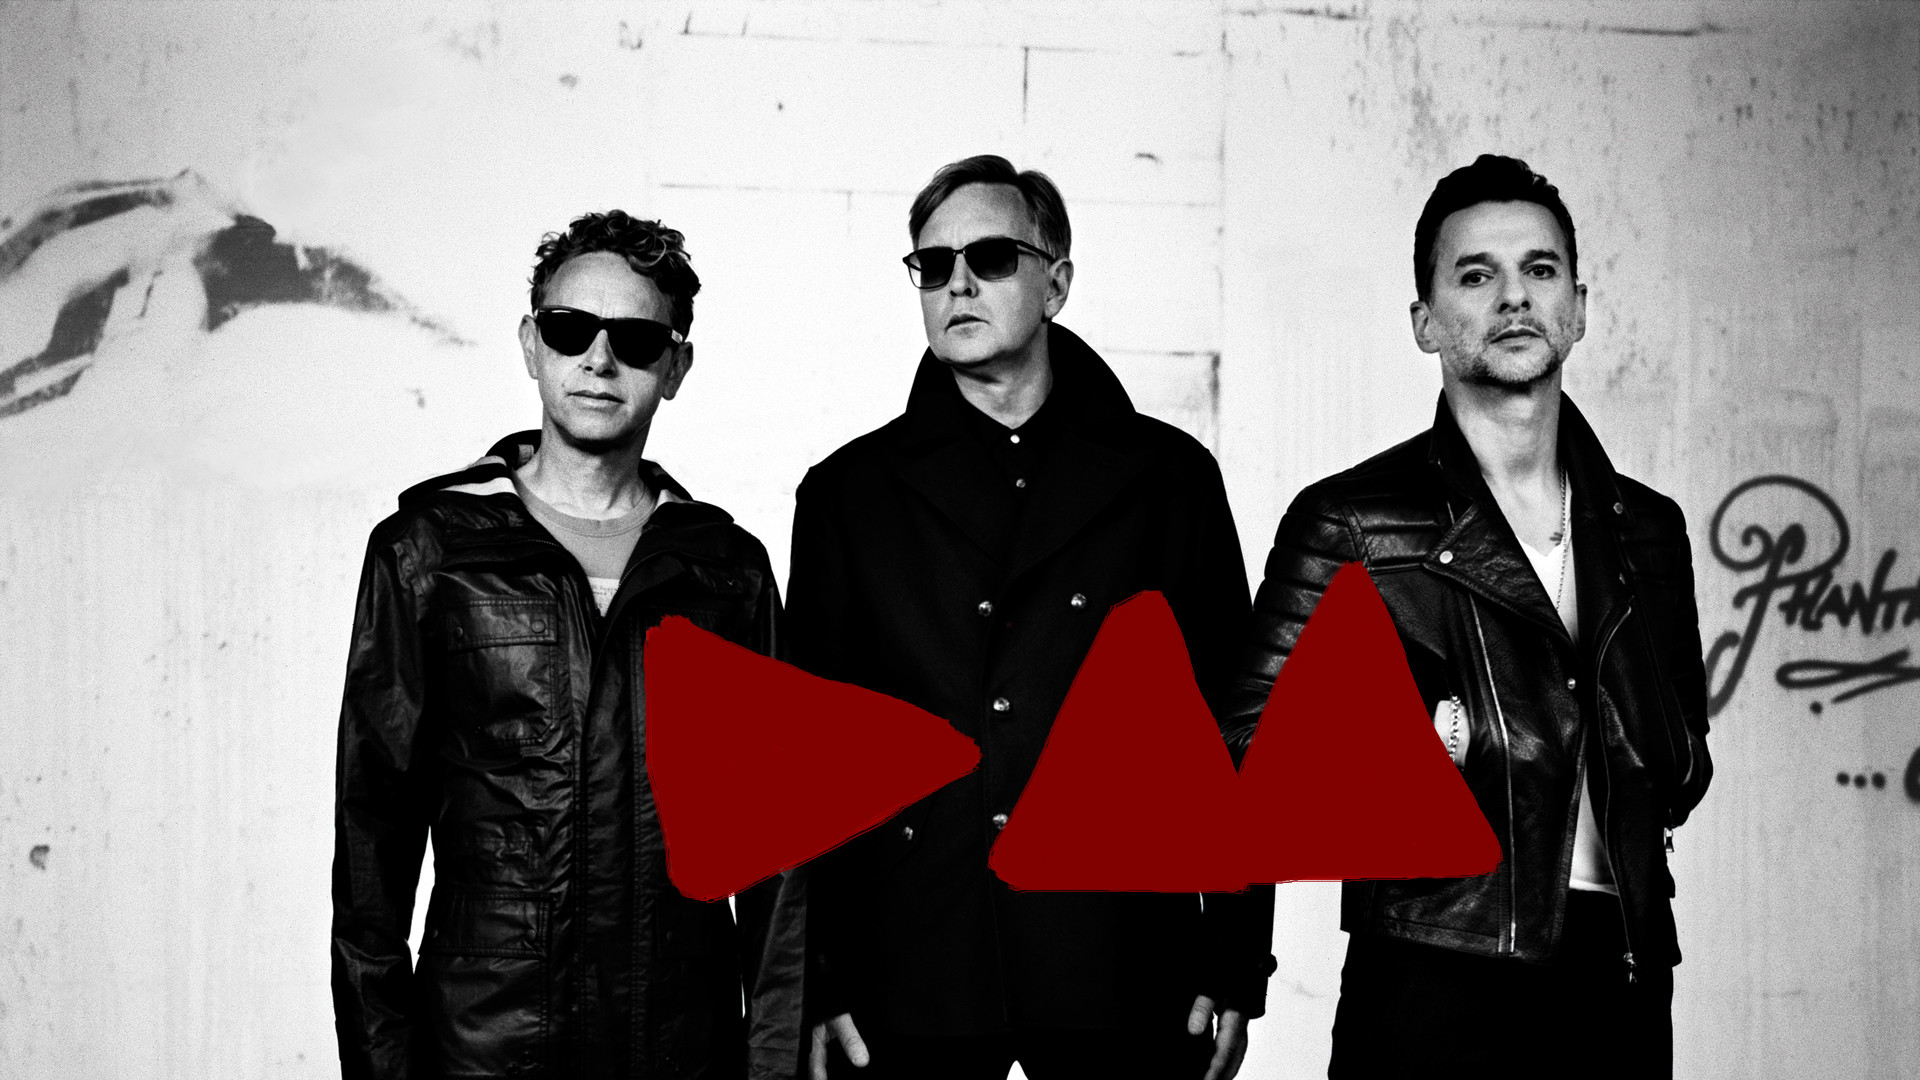 1920x1080 Full HD 1080p Depeche Mode Wallpapers HD, Desktop Backgrounds